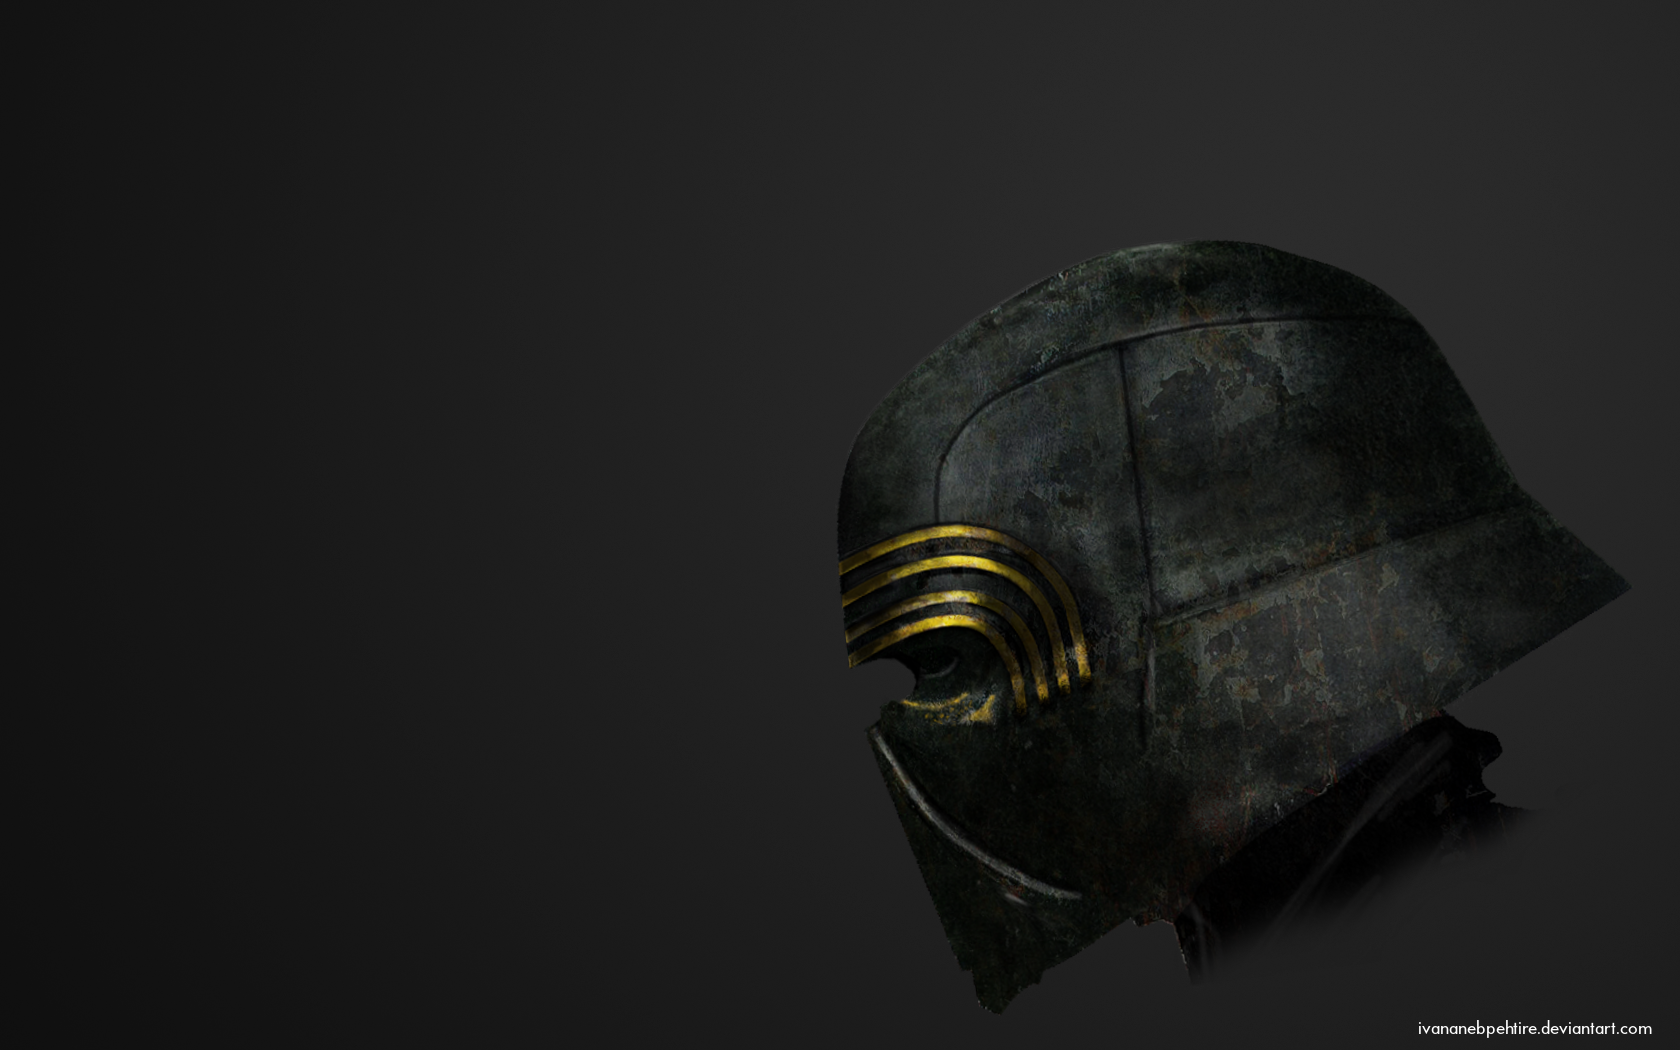 Also if youre looking for a good clear image of the mask I found a 1680x1050